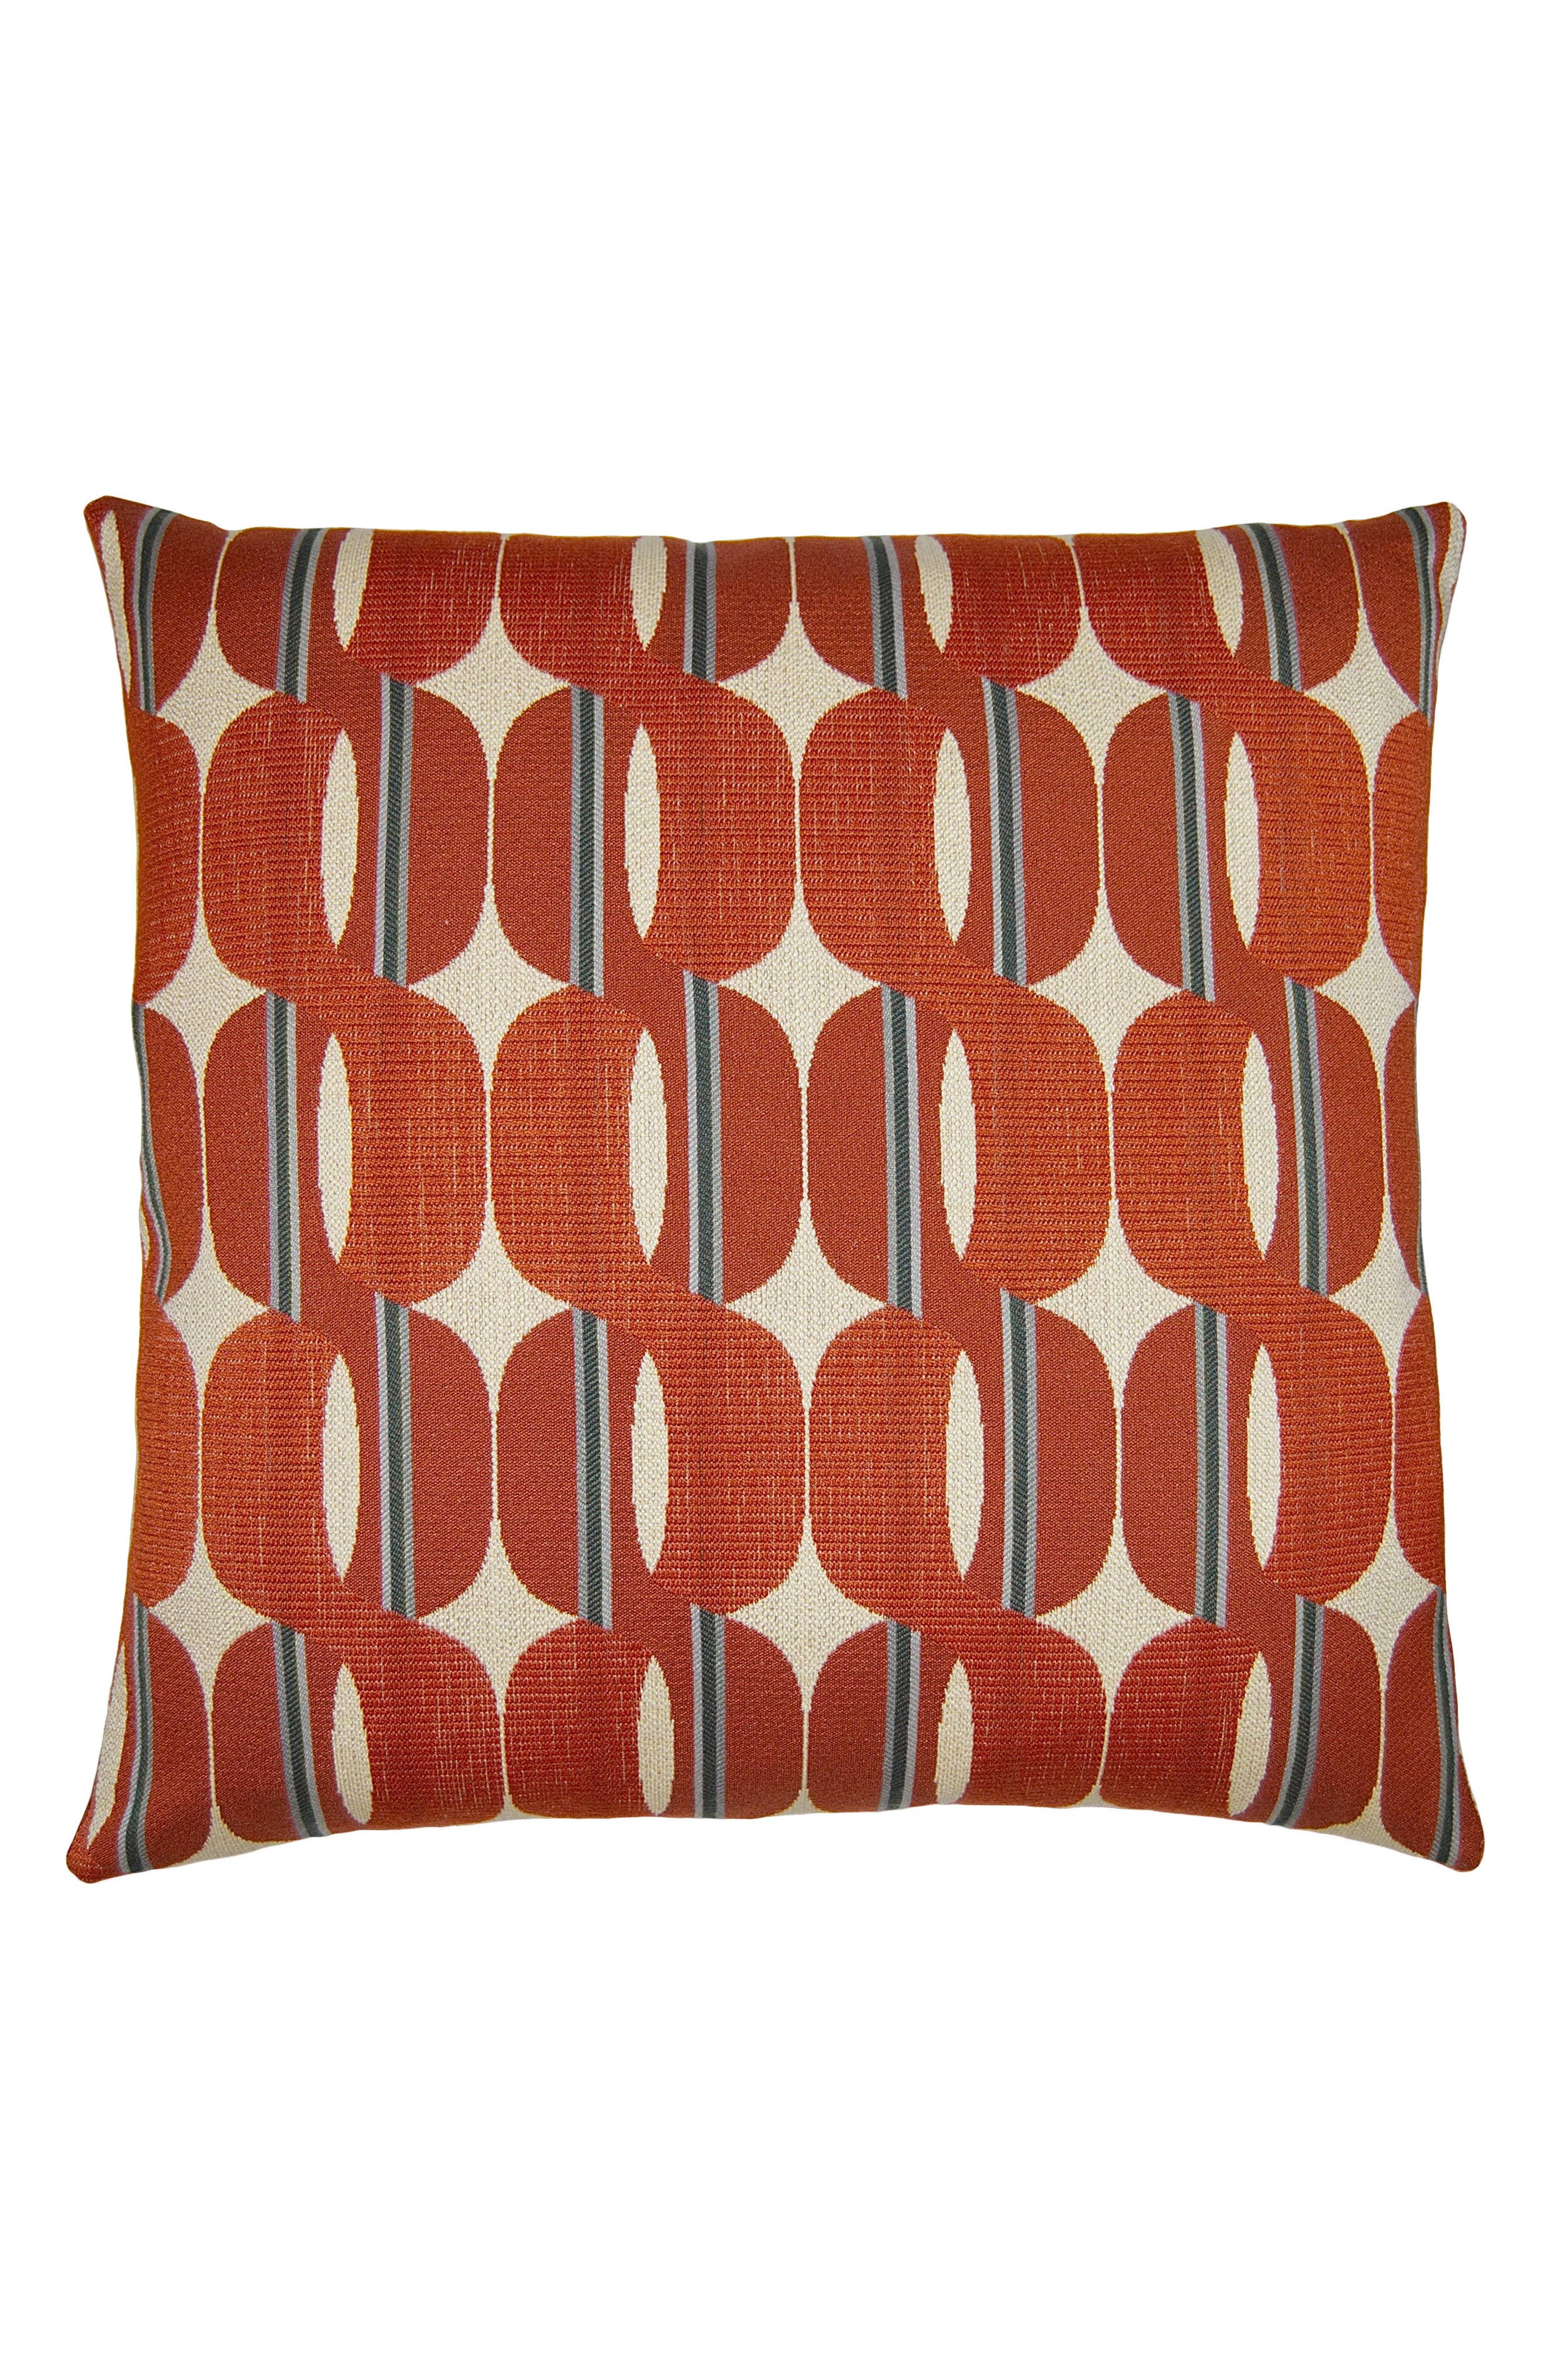 Square Feathers Tang Rings Accent Pillow